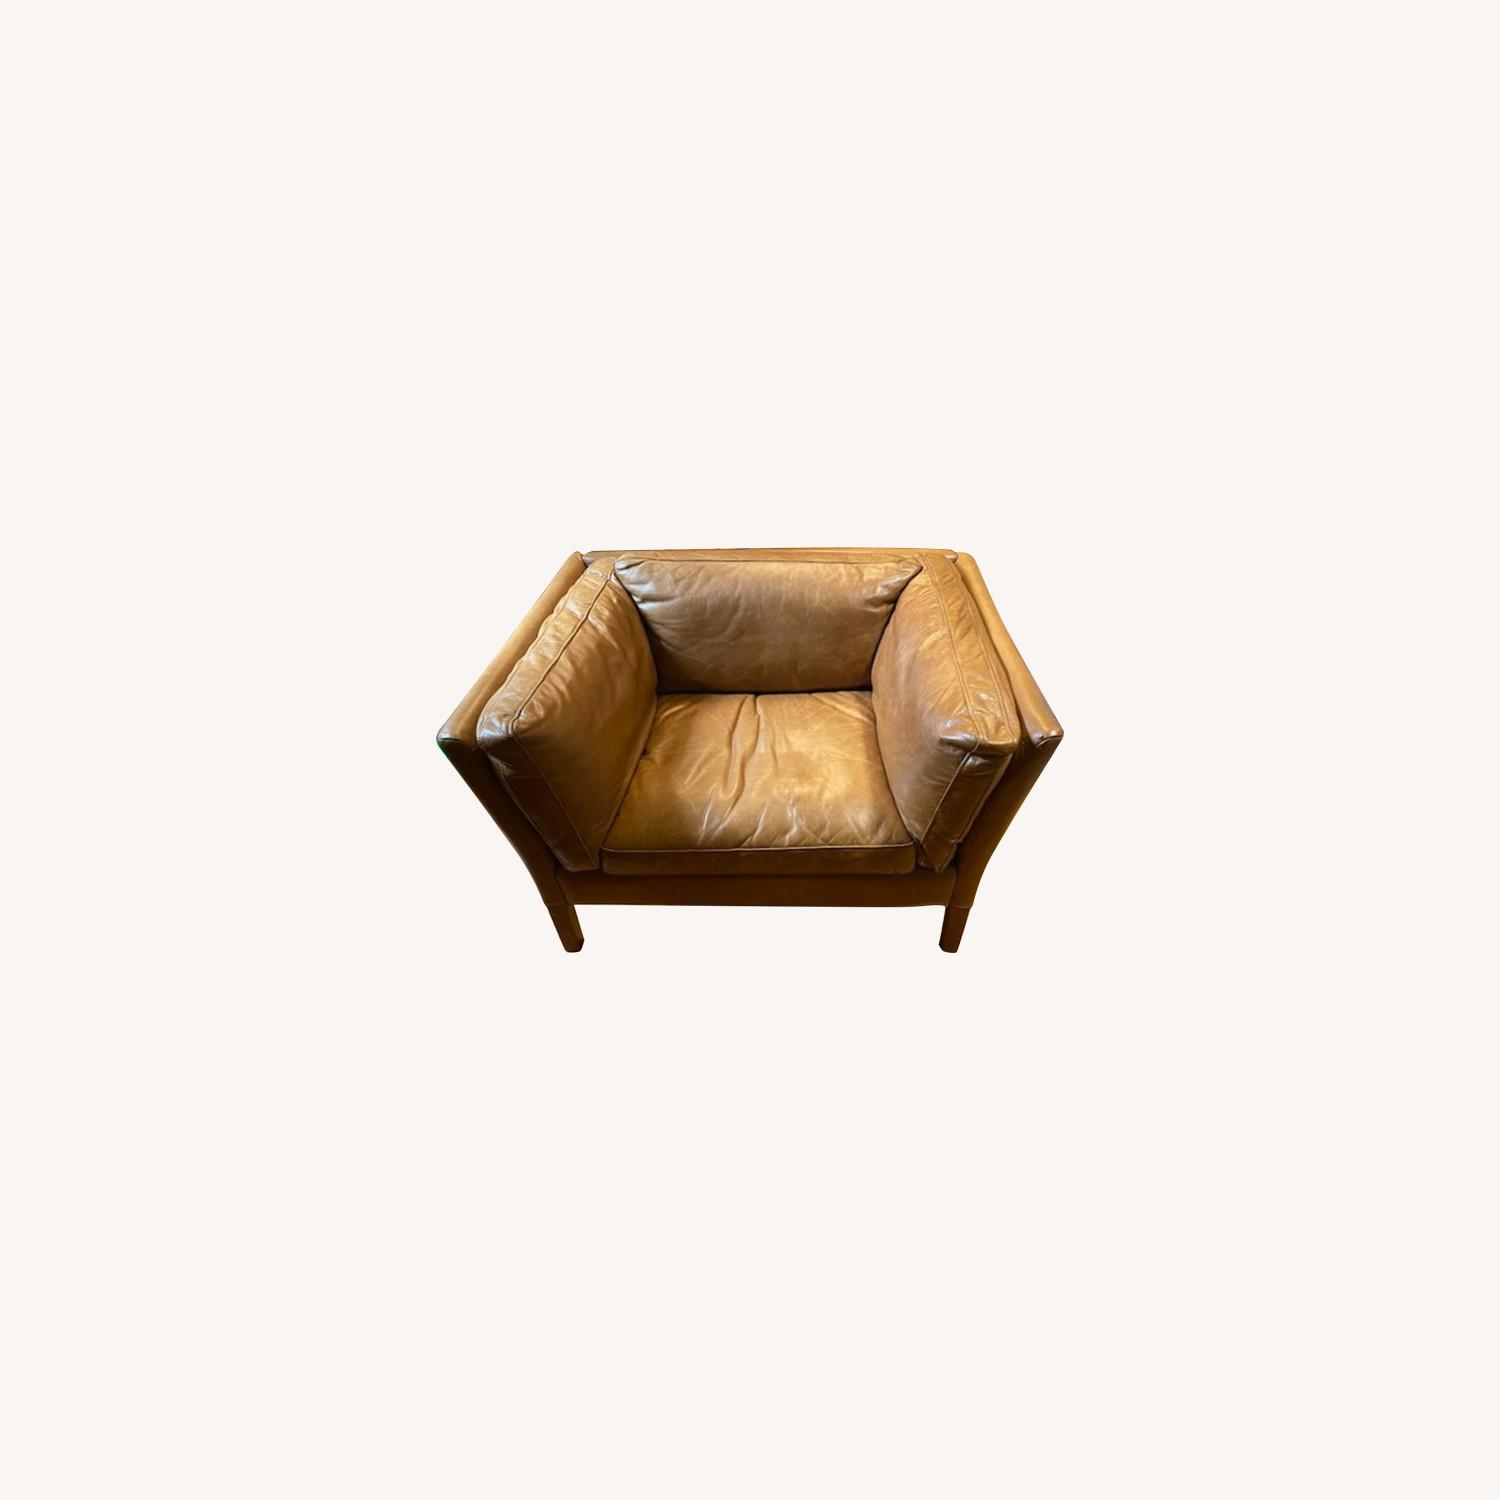 Restoration Hardware Leather Sorensen Chair - image-0